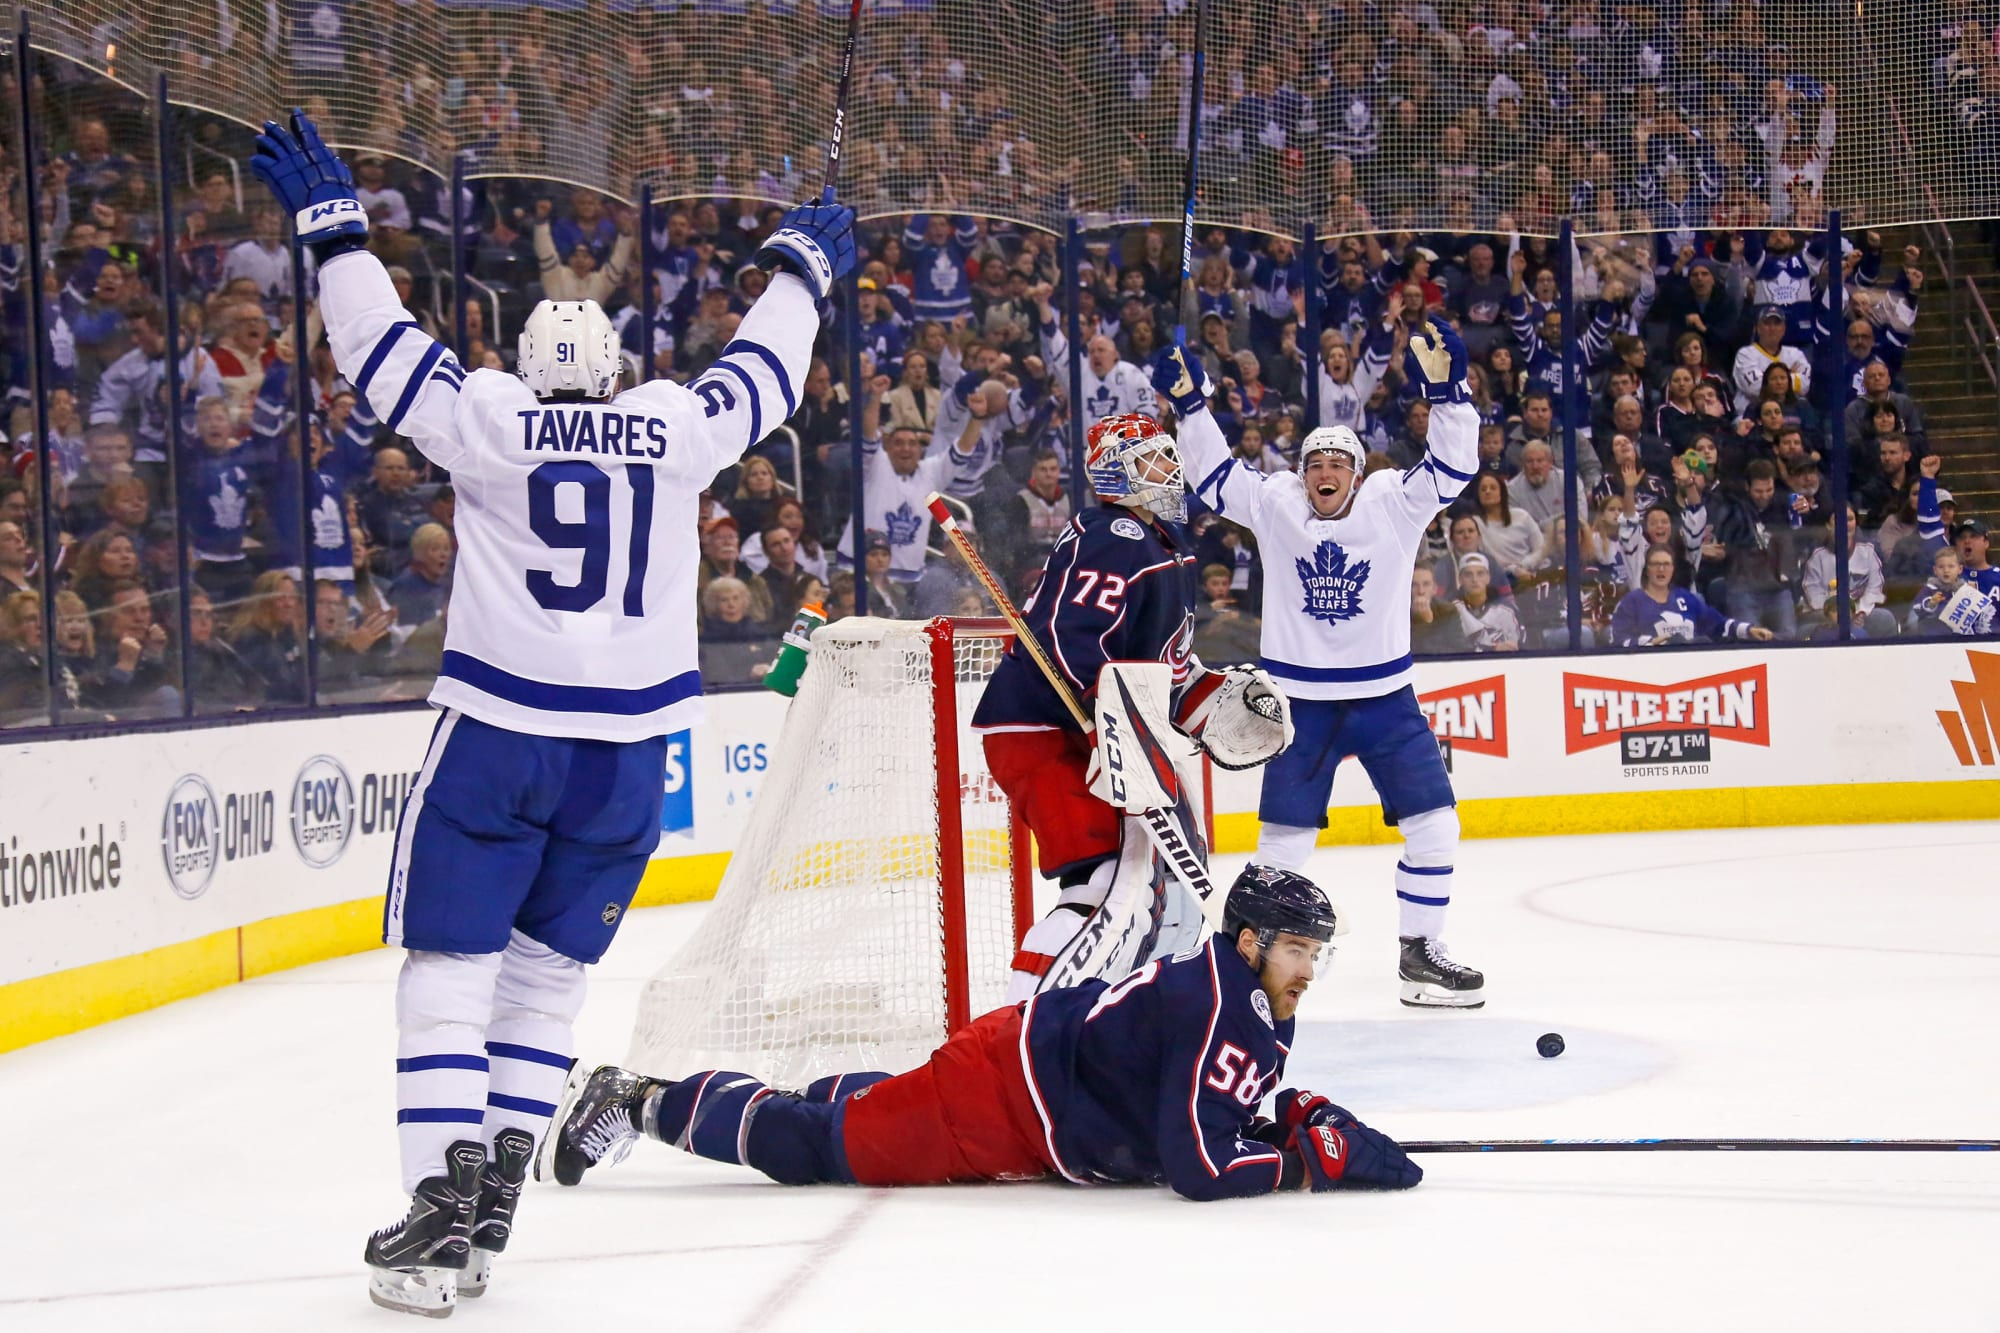 Toronto Maple Leafs Leverage Flexibility Into Deeper, Better Team